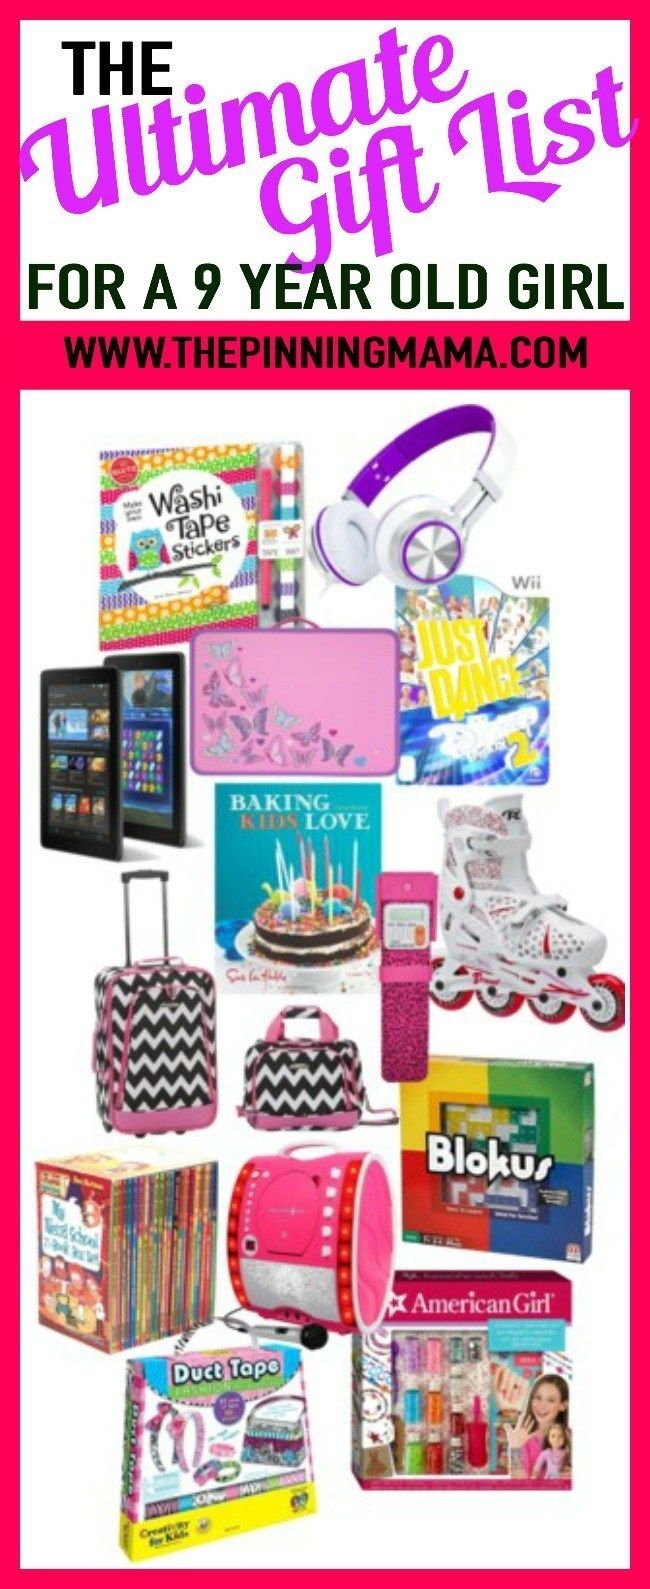 10 Most Recommended Gift Ideas For Year Old Daughter Themes Birthday 6 Yr Girl